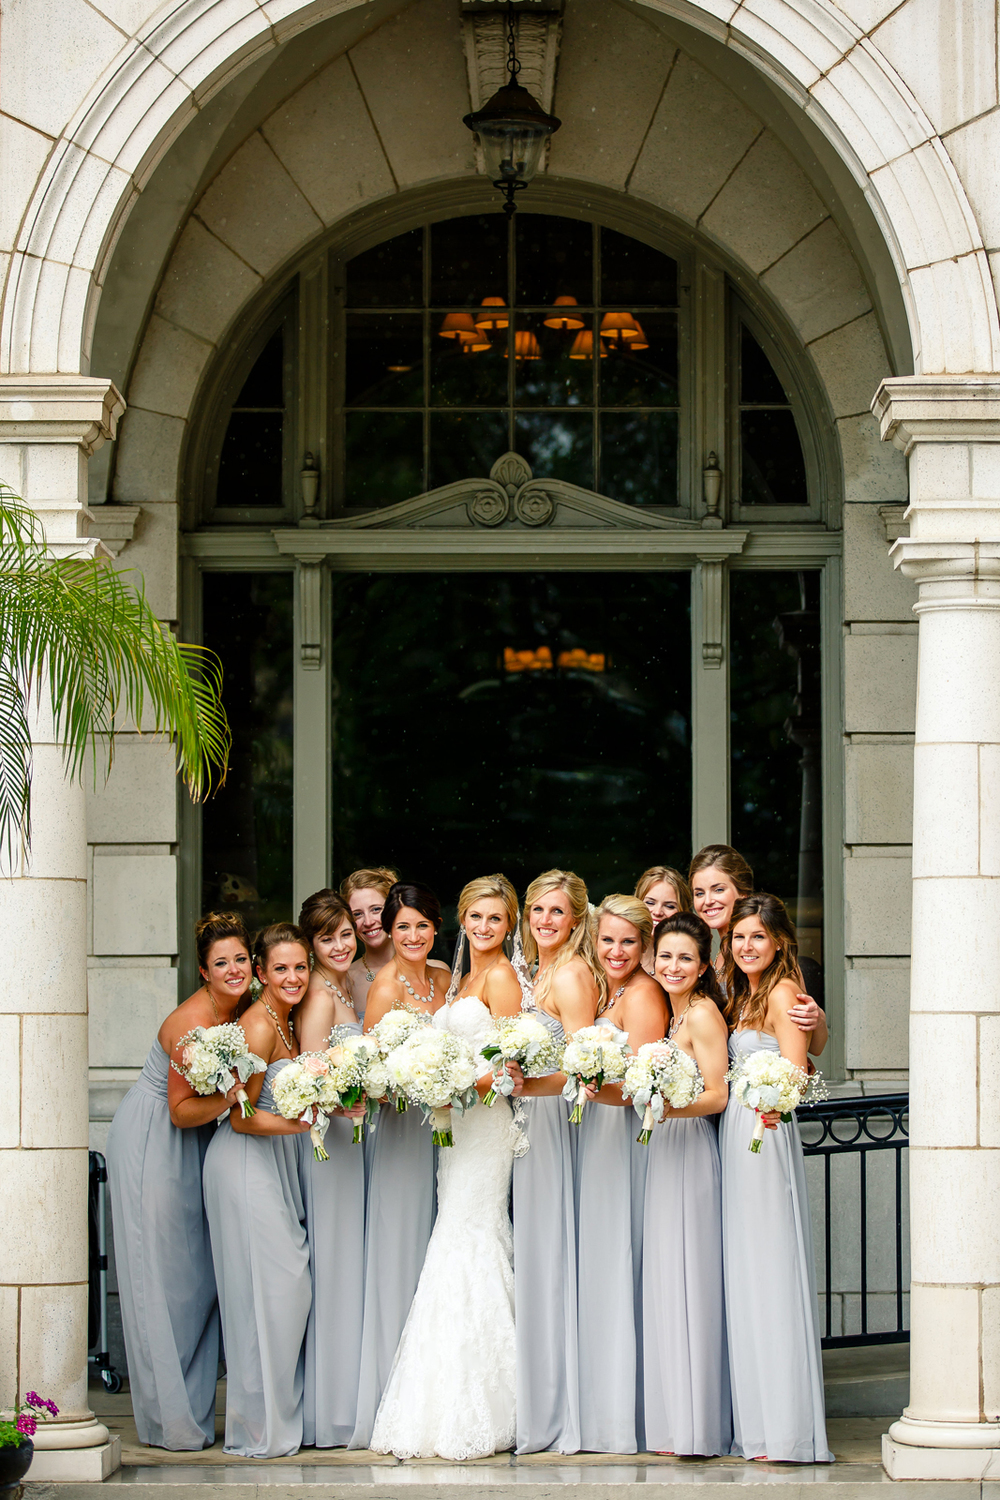 Bride Groom Wedding Party Gray Grey Black Tux Tuxedos Veil St. Louis Wedding Photographers by Oldani Photography 1.jpg